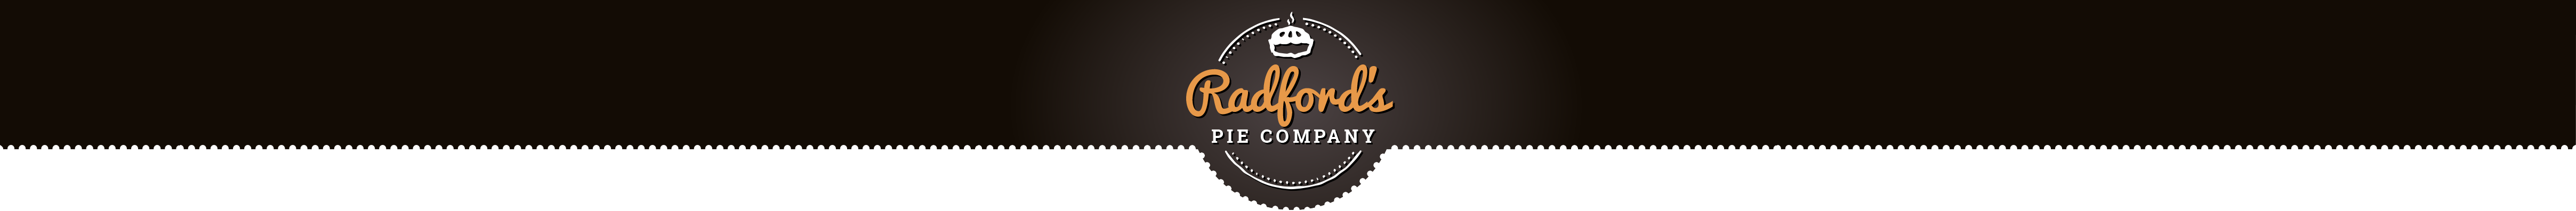 Radfords Pie Company